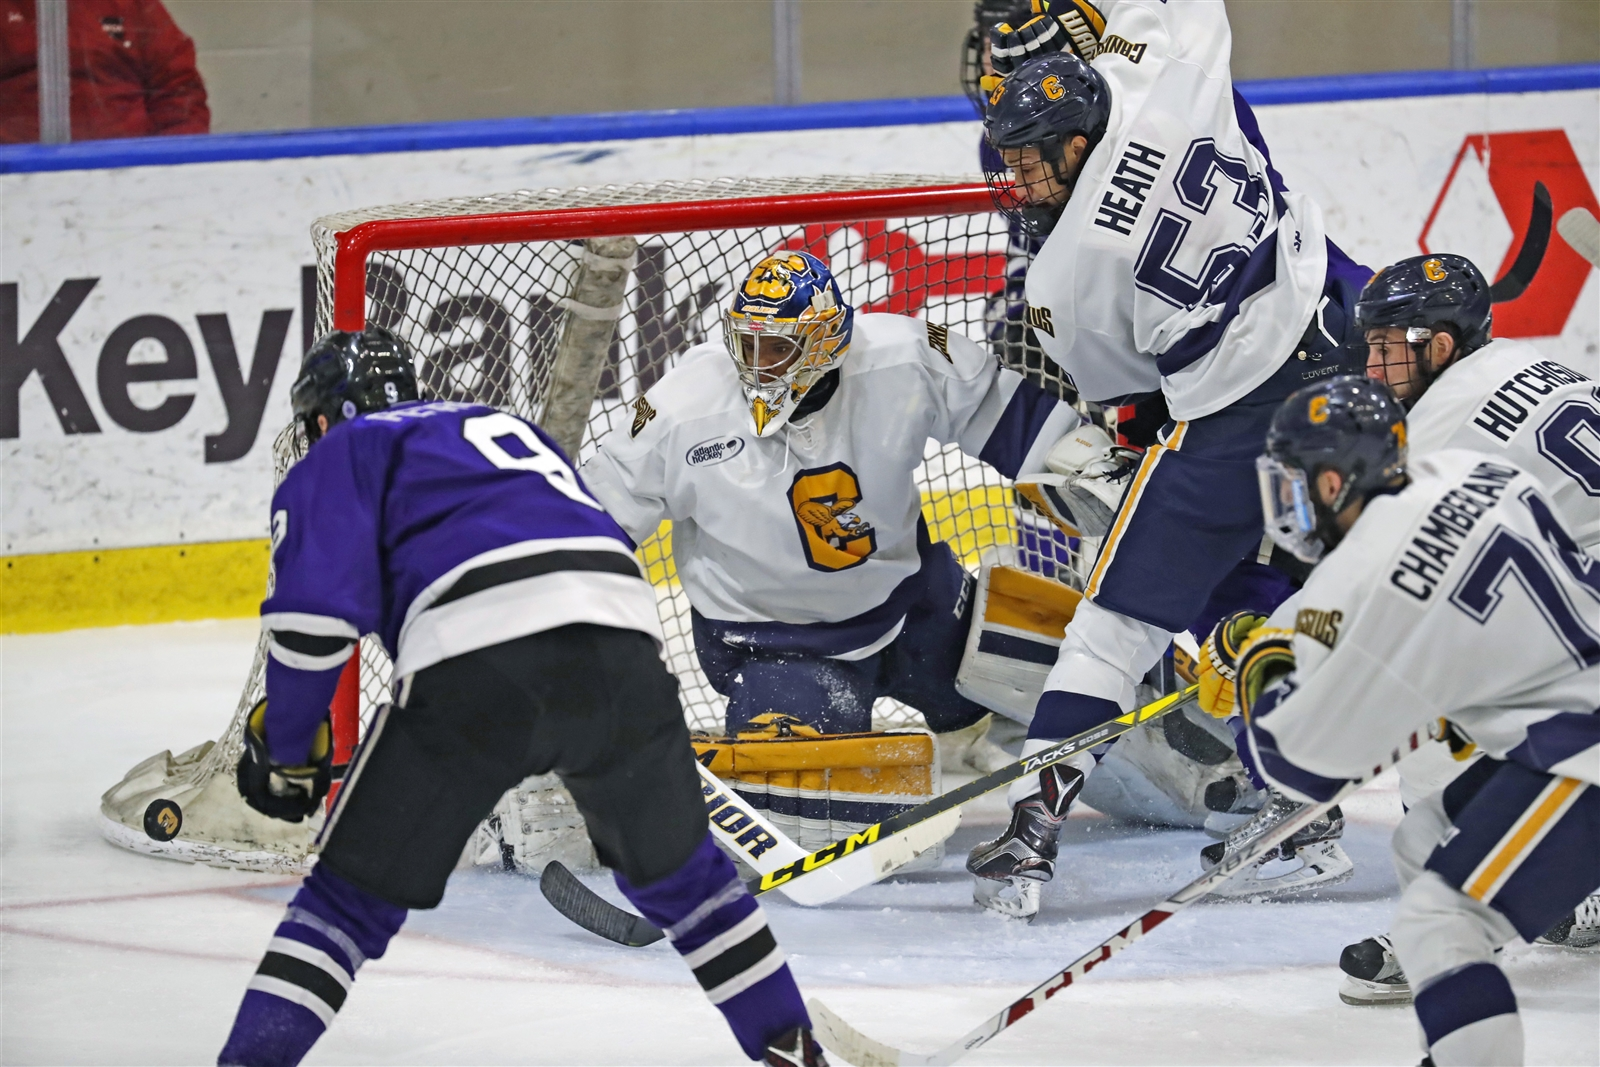 Charles Williams made 19 saves in the Griffs' 4-2 win over Niagara on Wednesday. (Harry Scull Jr./Buffalo News)